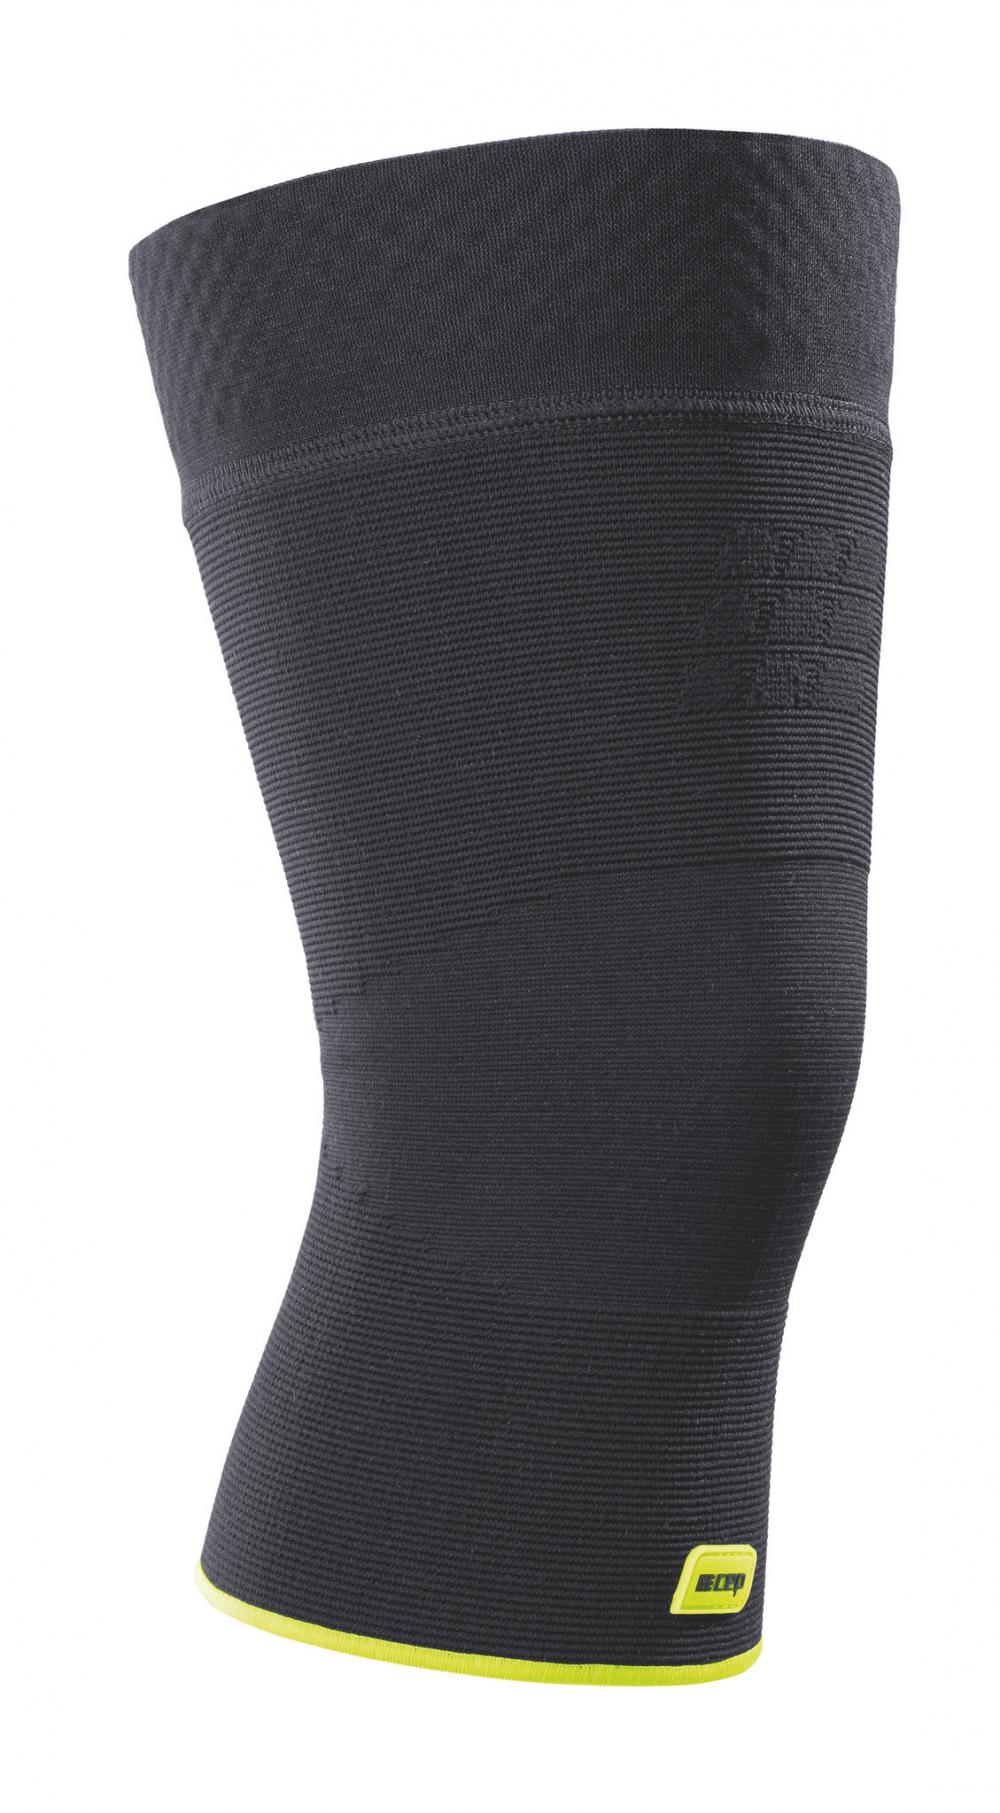 CEP Ortho + Compression Knee Sleeve, Size 2